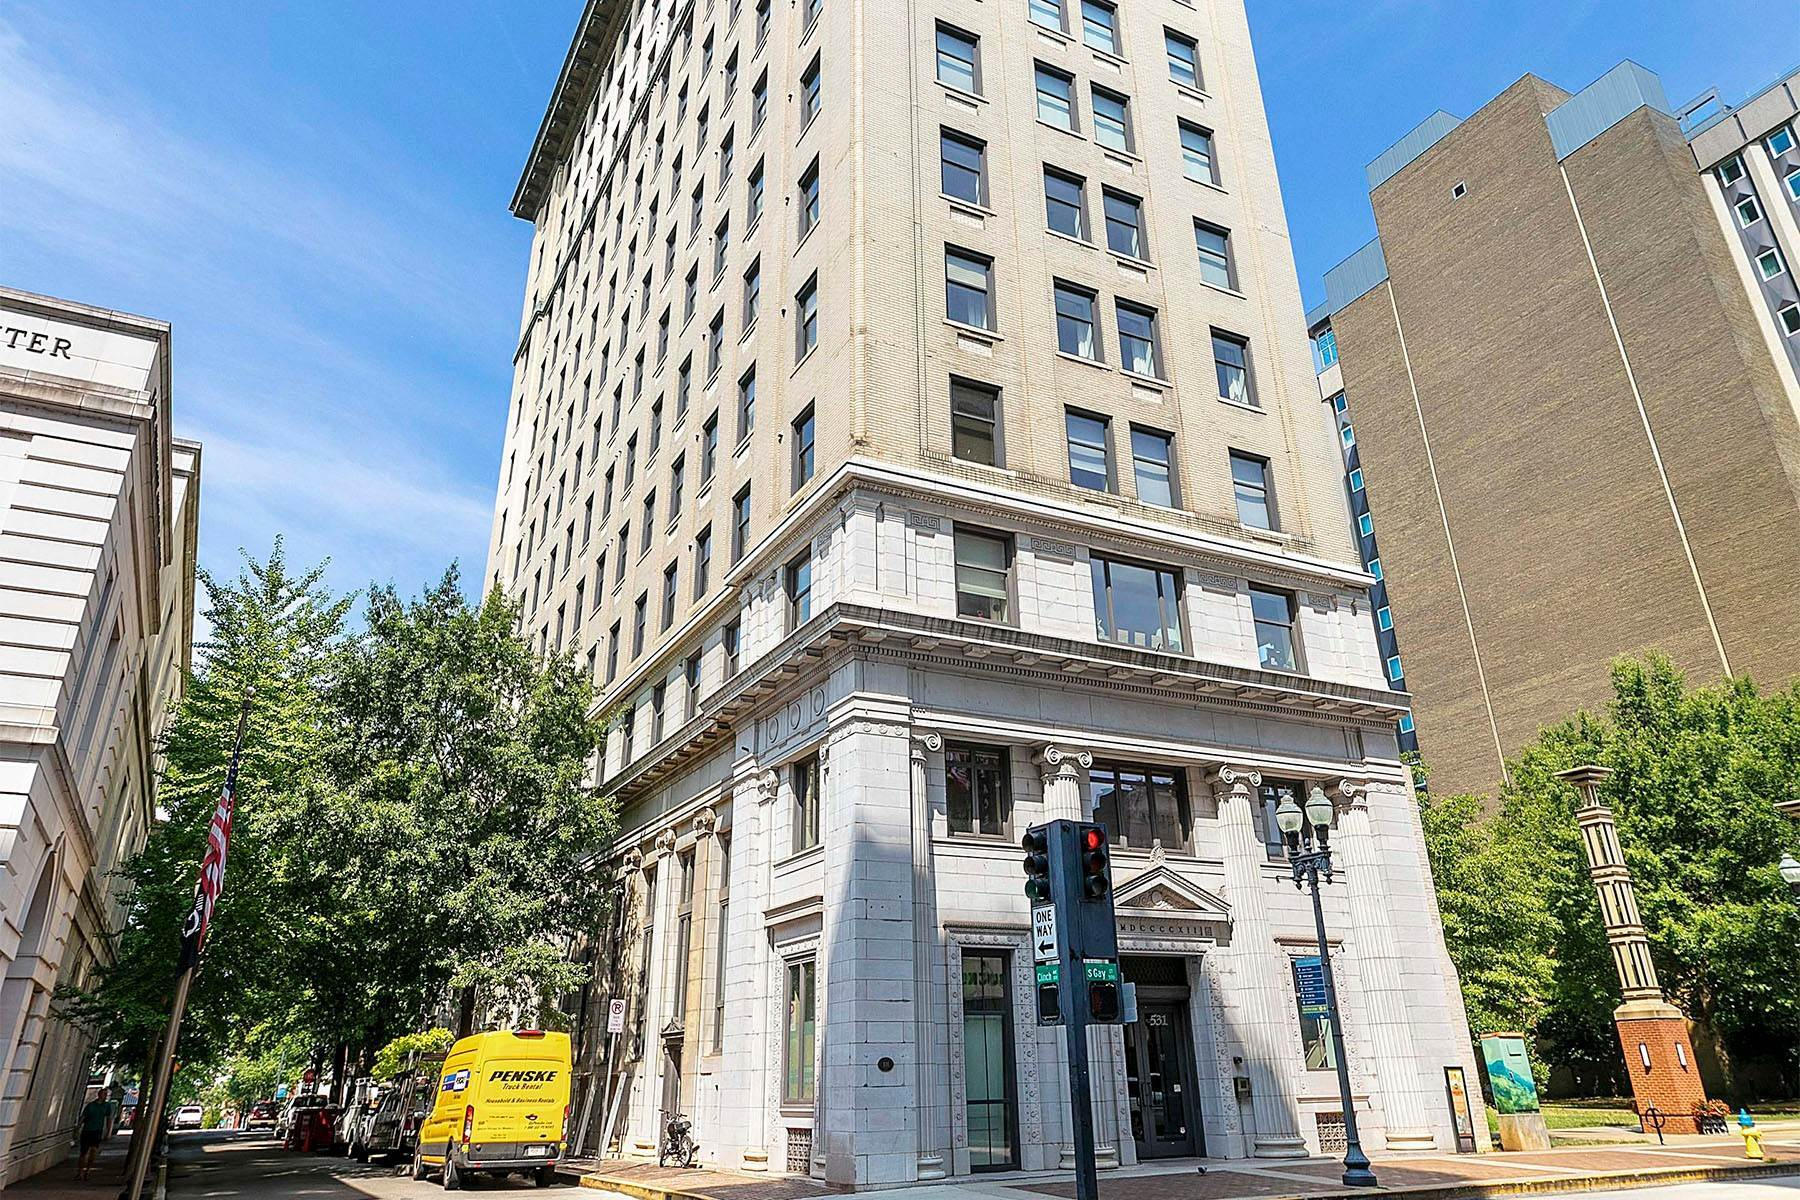 Single Family Homes for Sale at Luxuriously Appointed Downtown Condo 531 S. Gay Street #1202 Knoxville, Tennessee 37902 United States